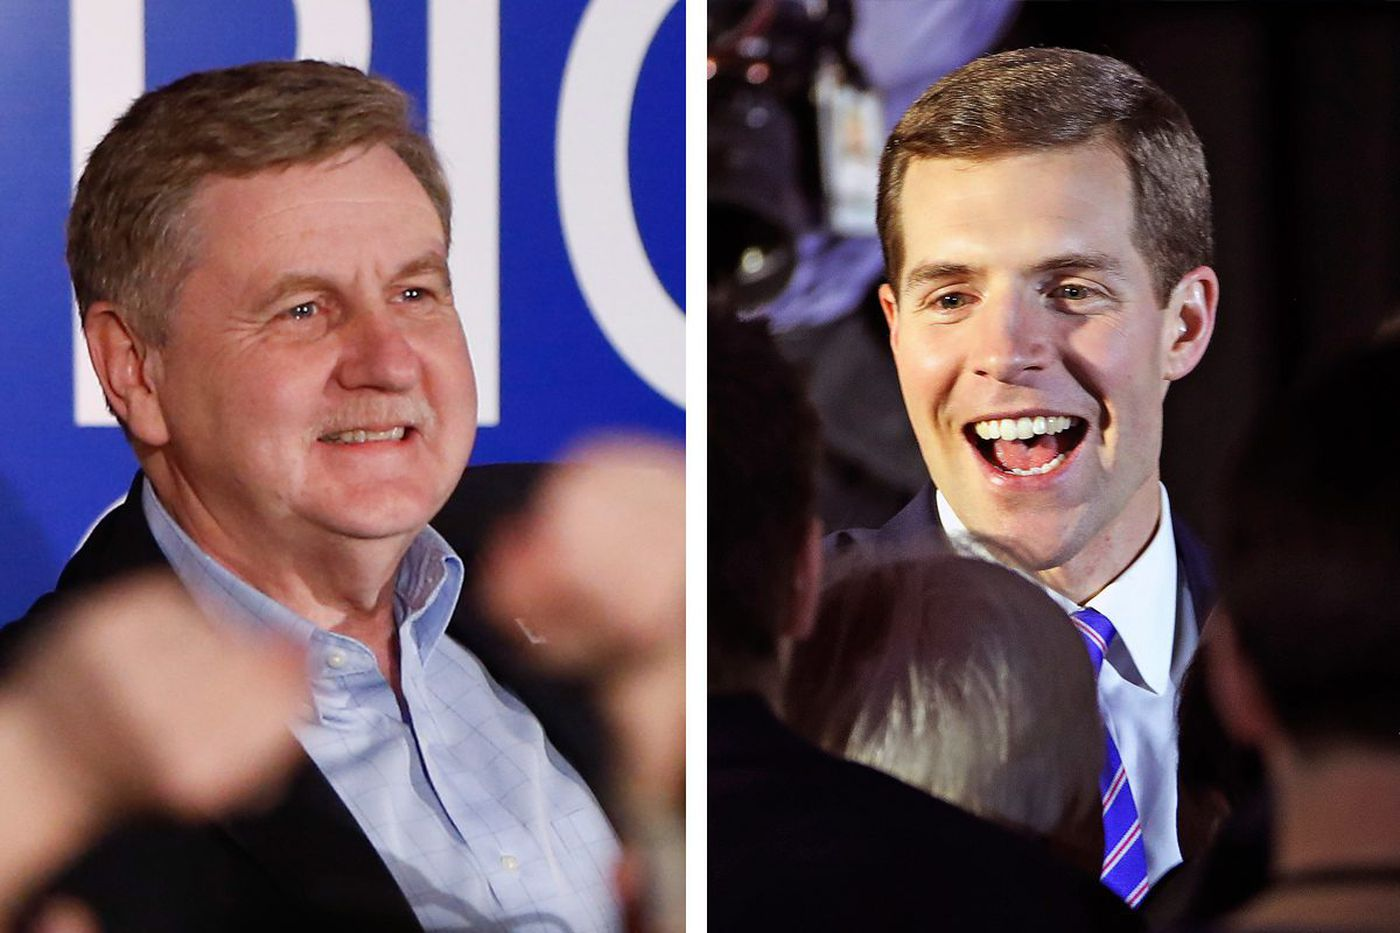 Pa. 18 congressional district results: Lamb says 'we did it.' Saccone says it's 'NOT over'